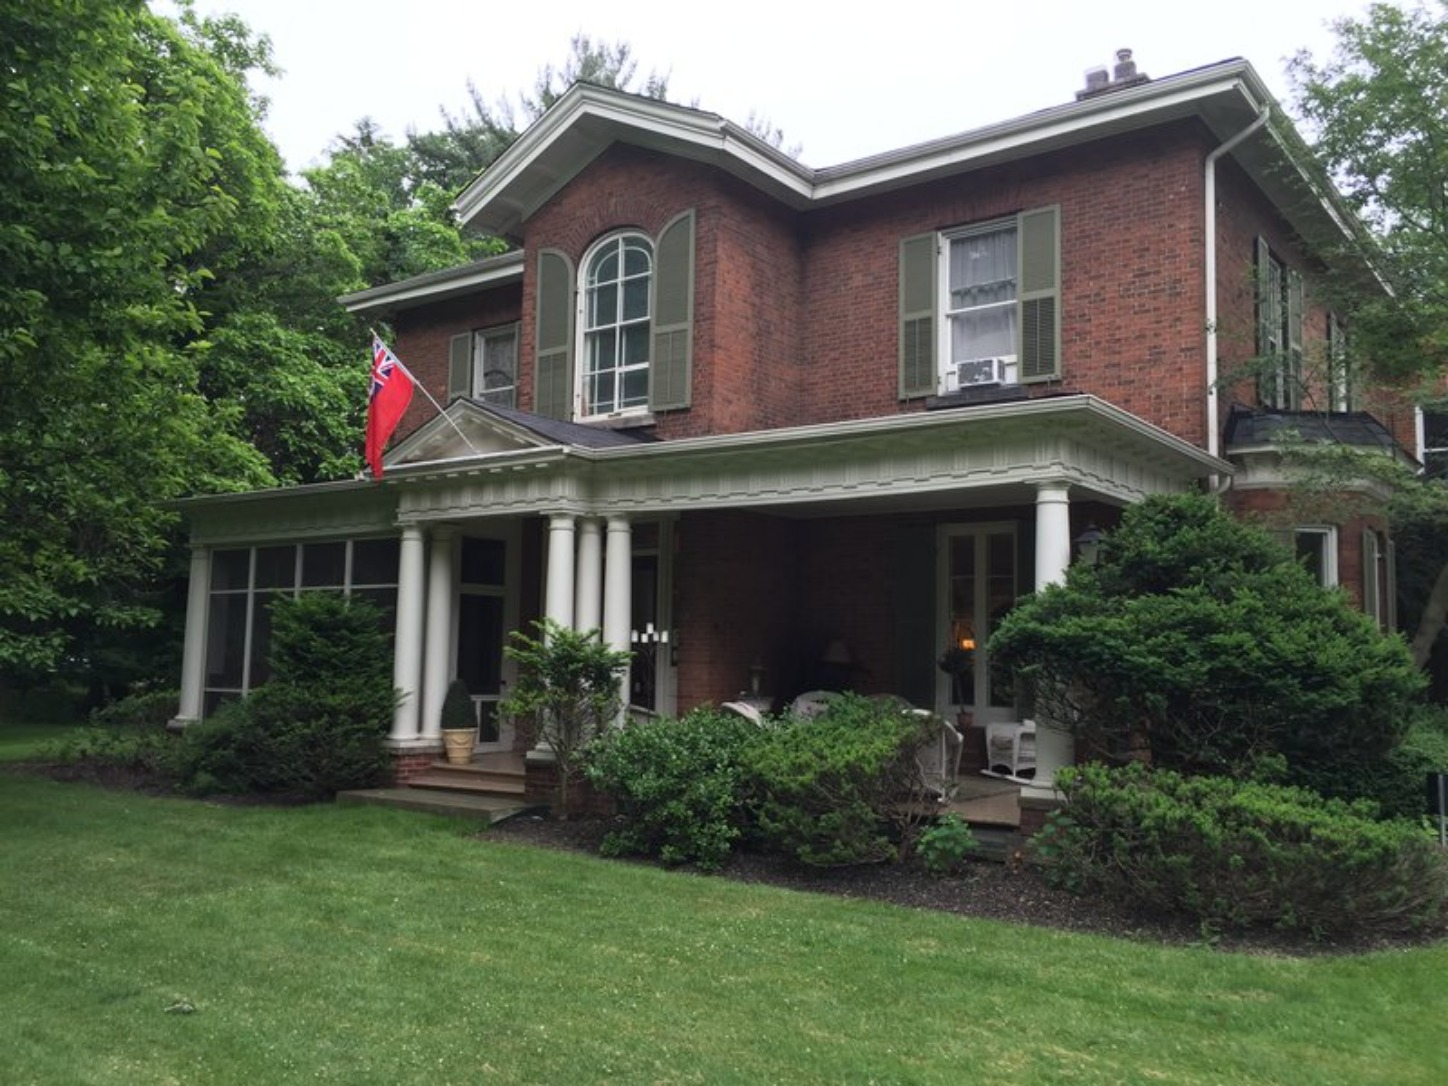 A house with trees in the background at Osler House.